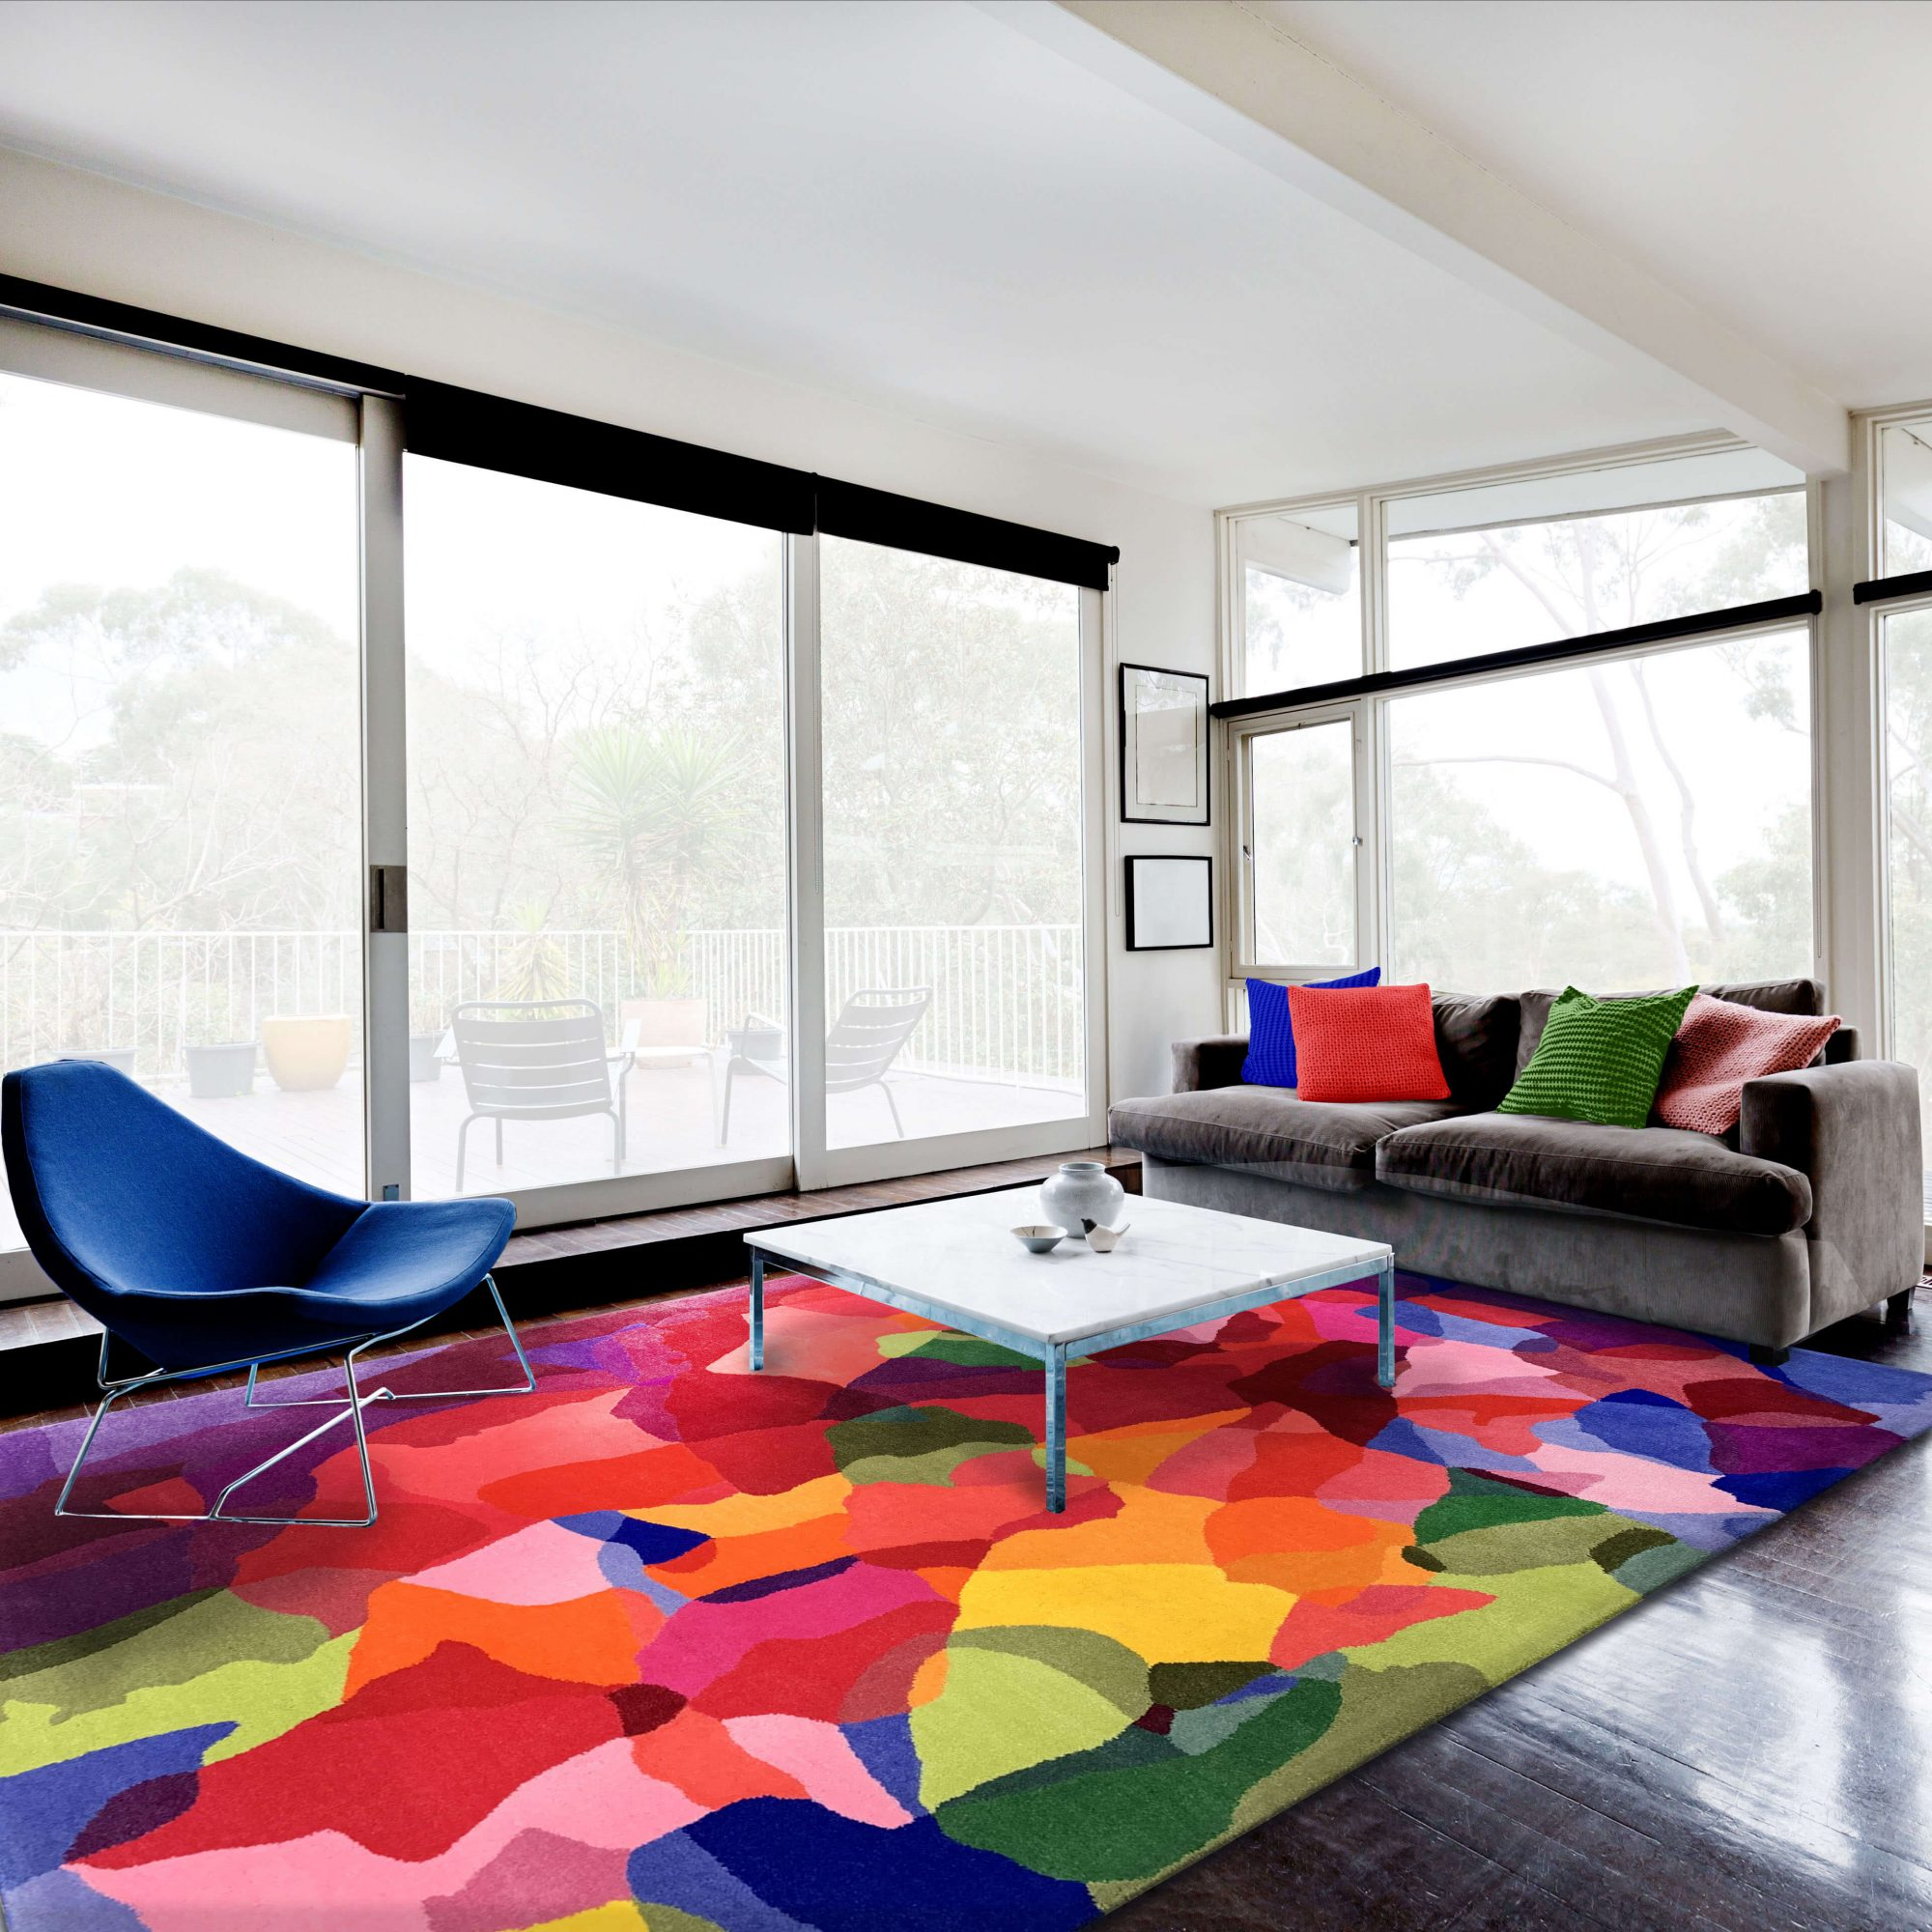 How to protect your designer rug - Microseal